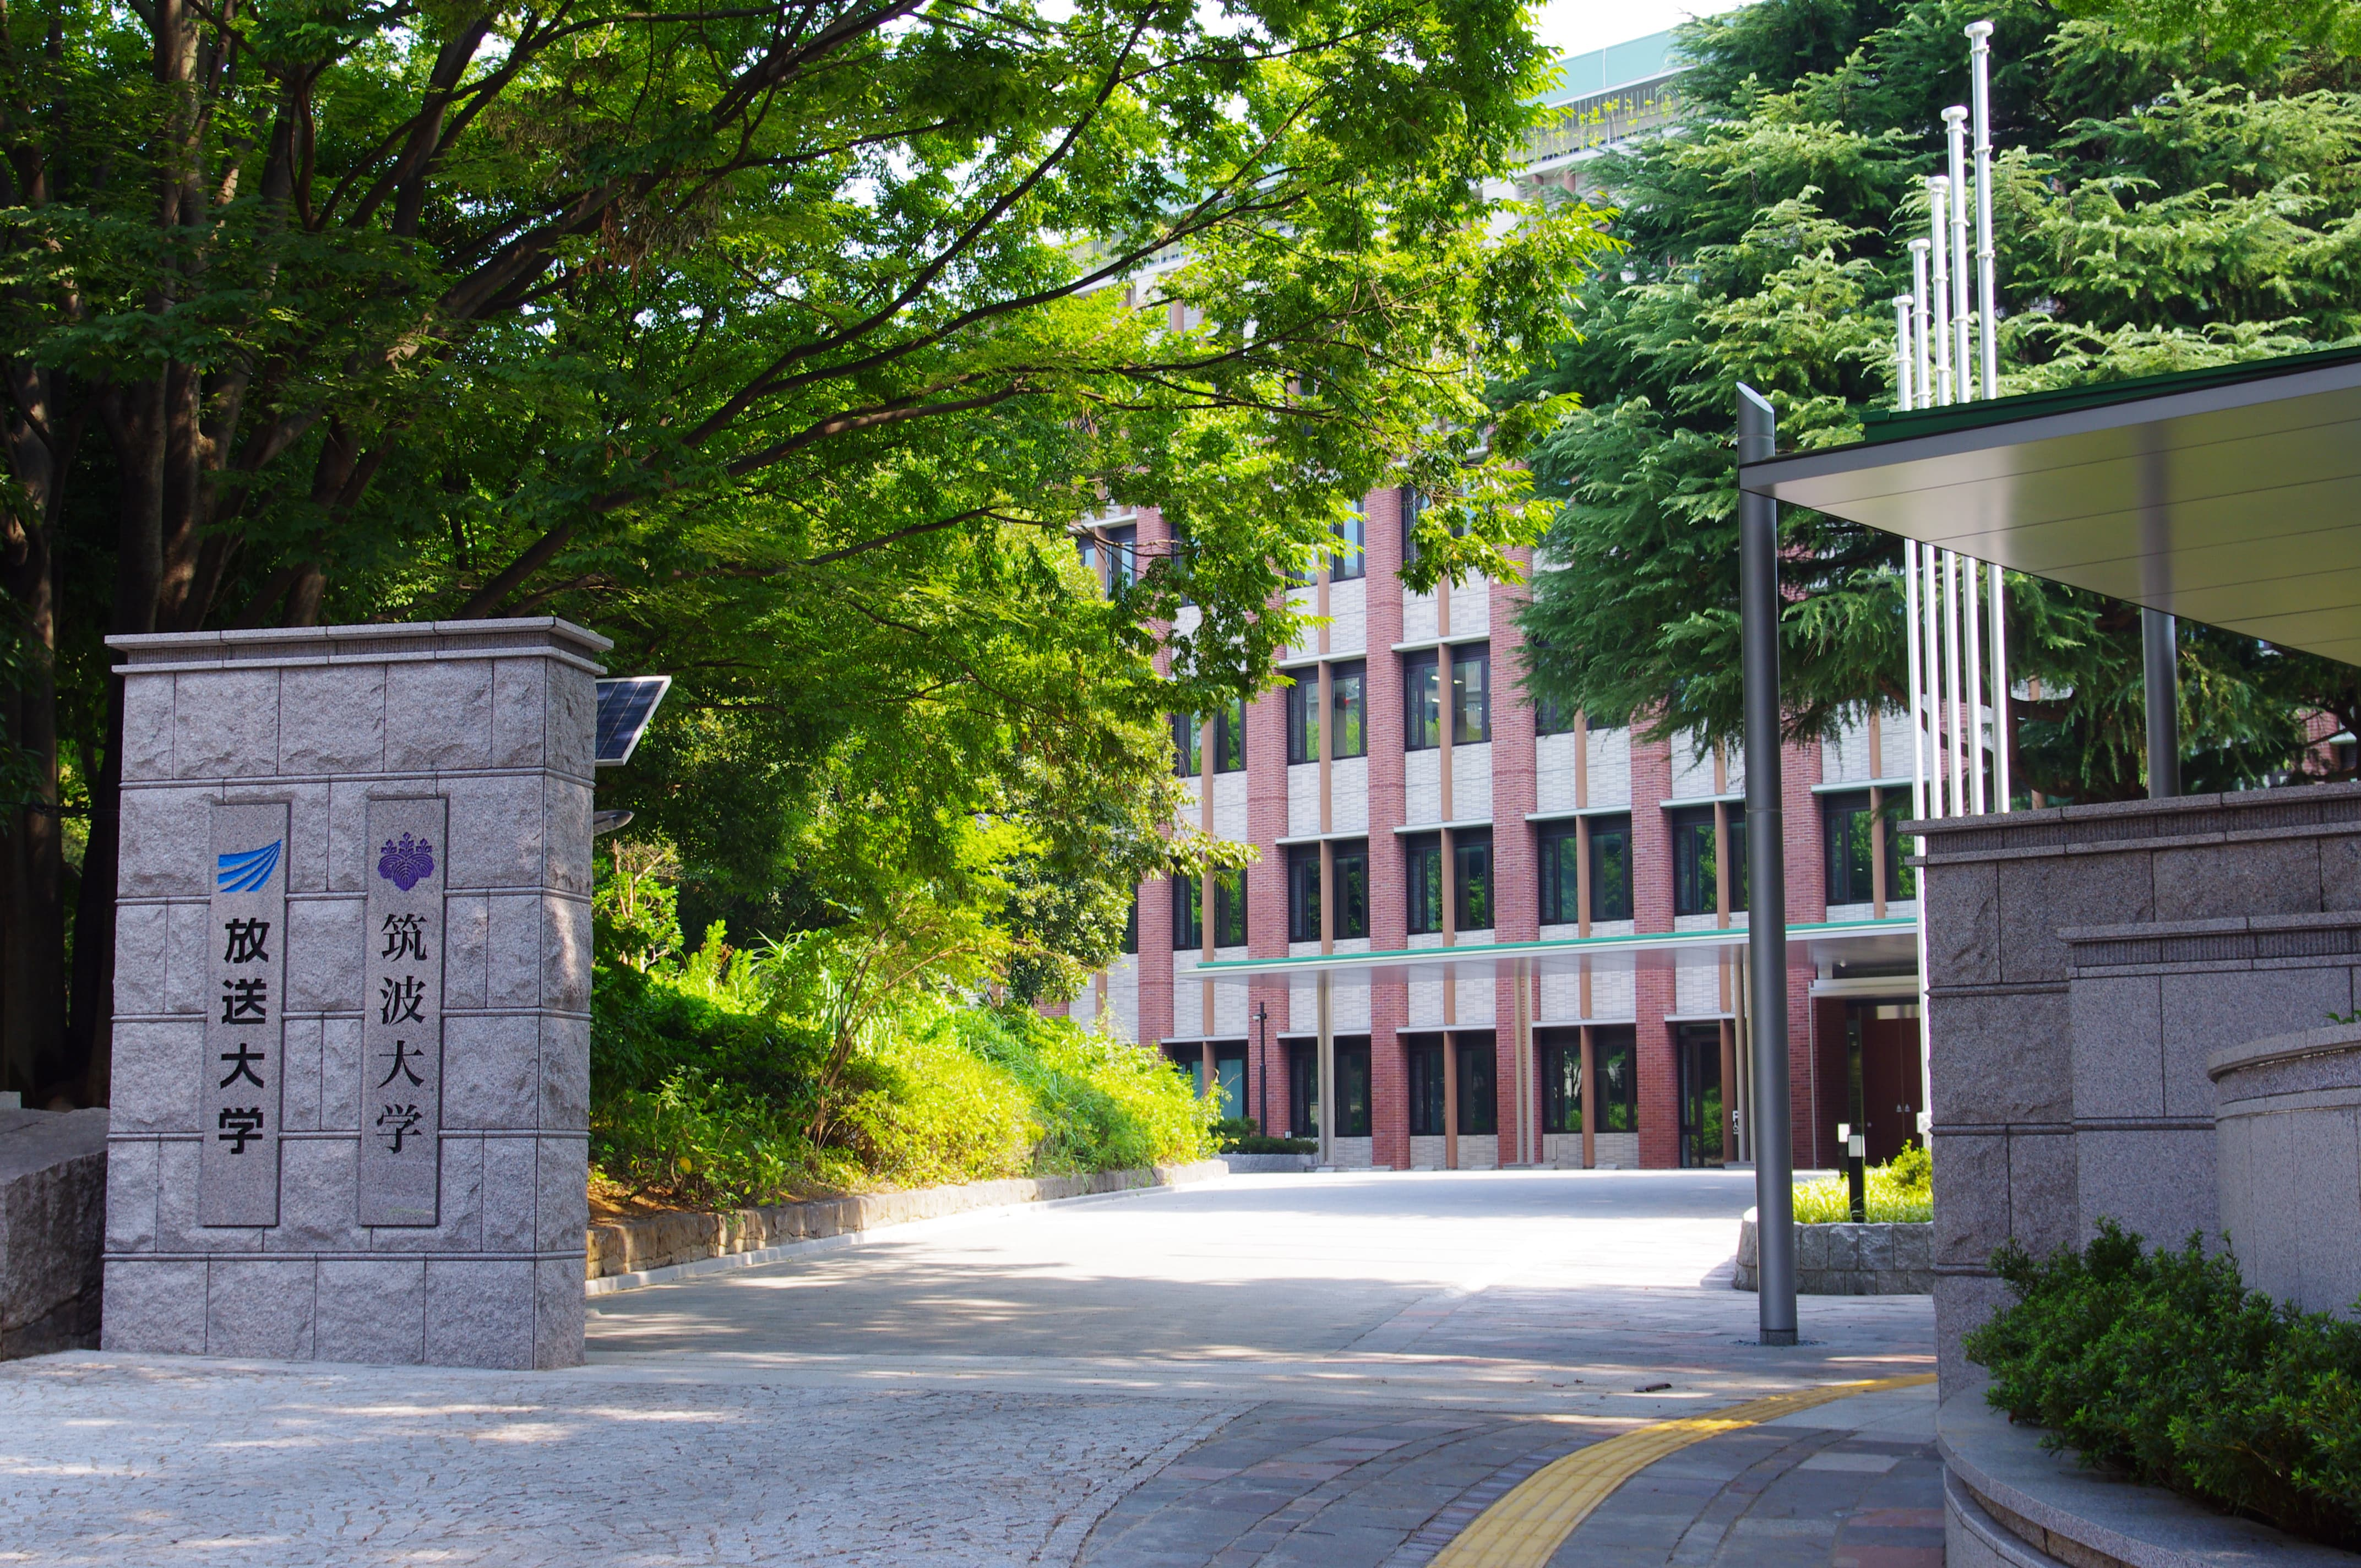 MIT-Tsukuba Joint-Workshop on Data Systems Science towards Social and Business Innovations